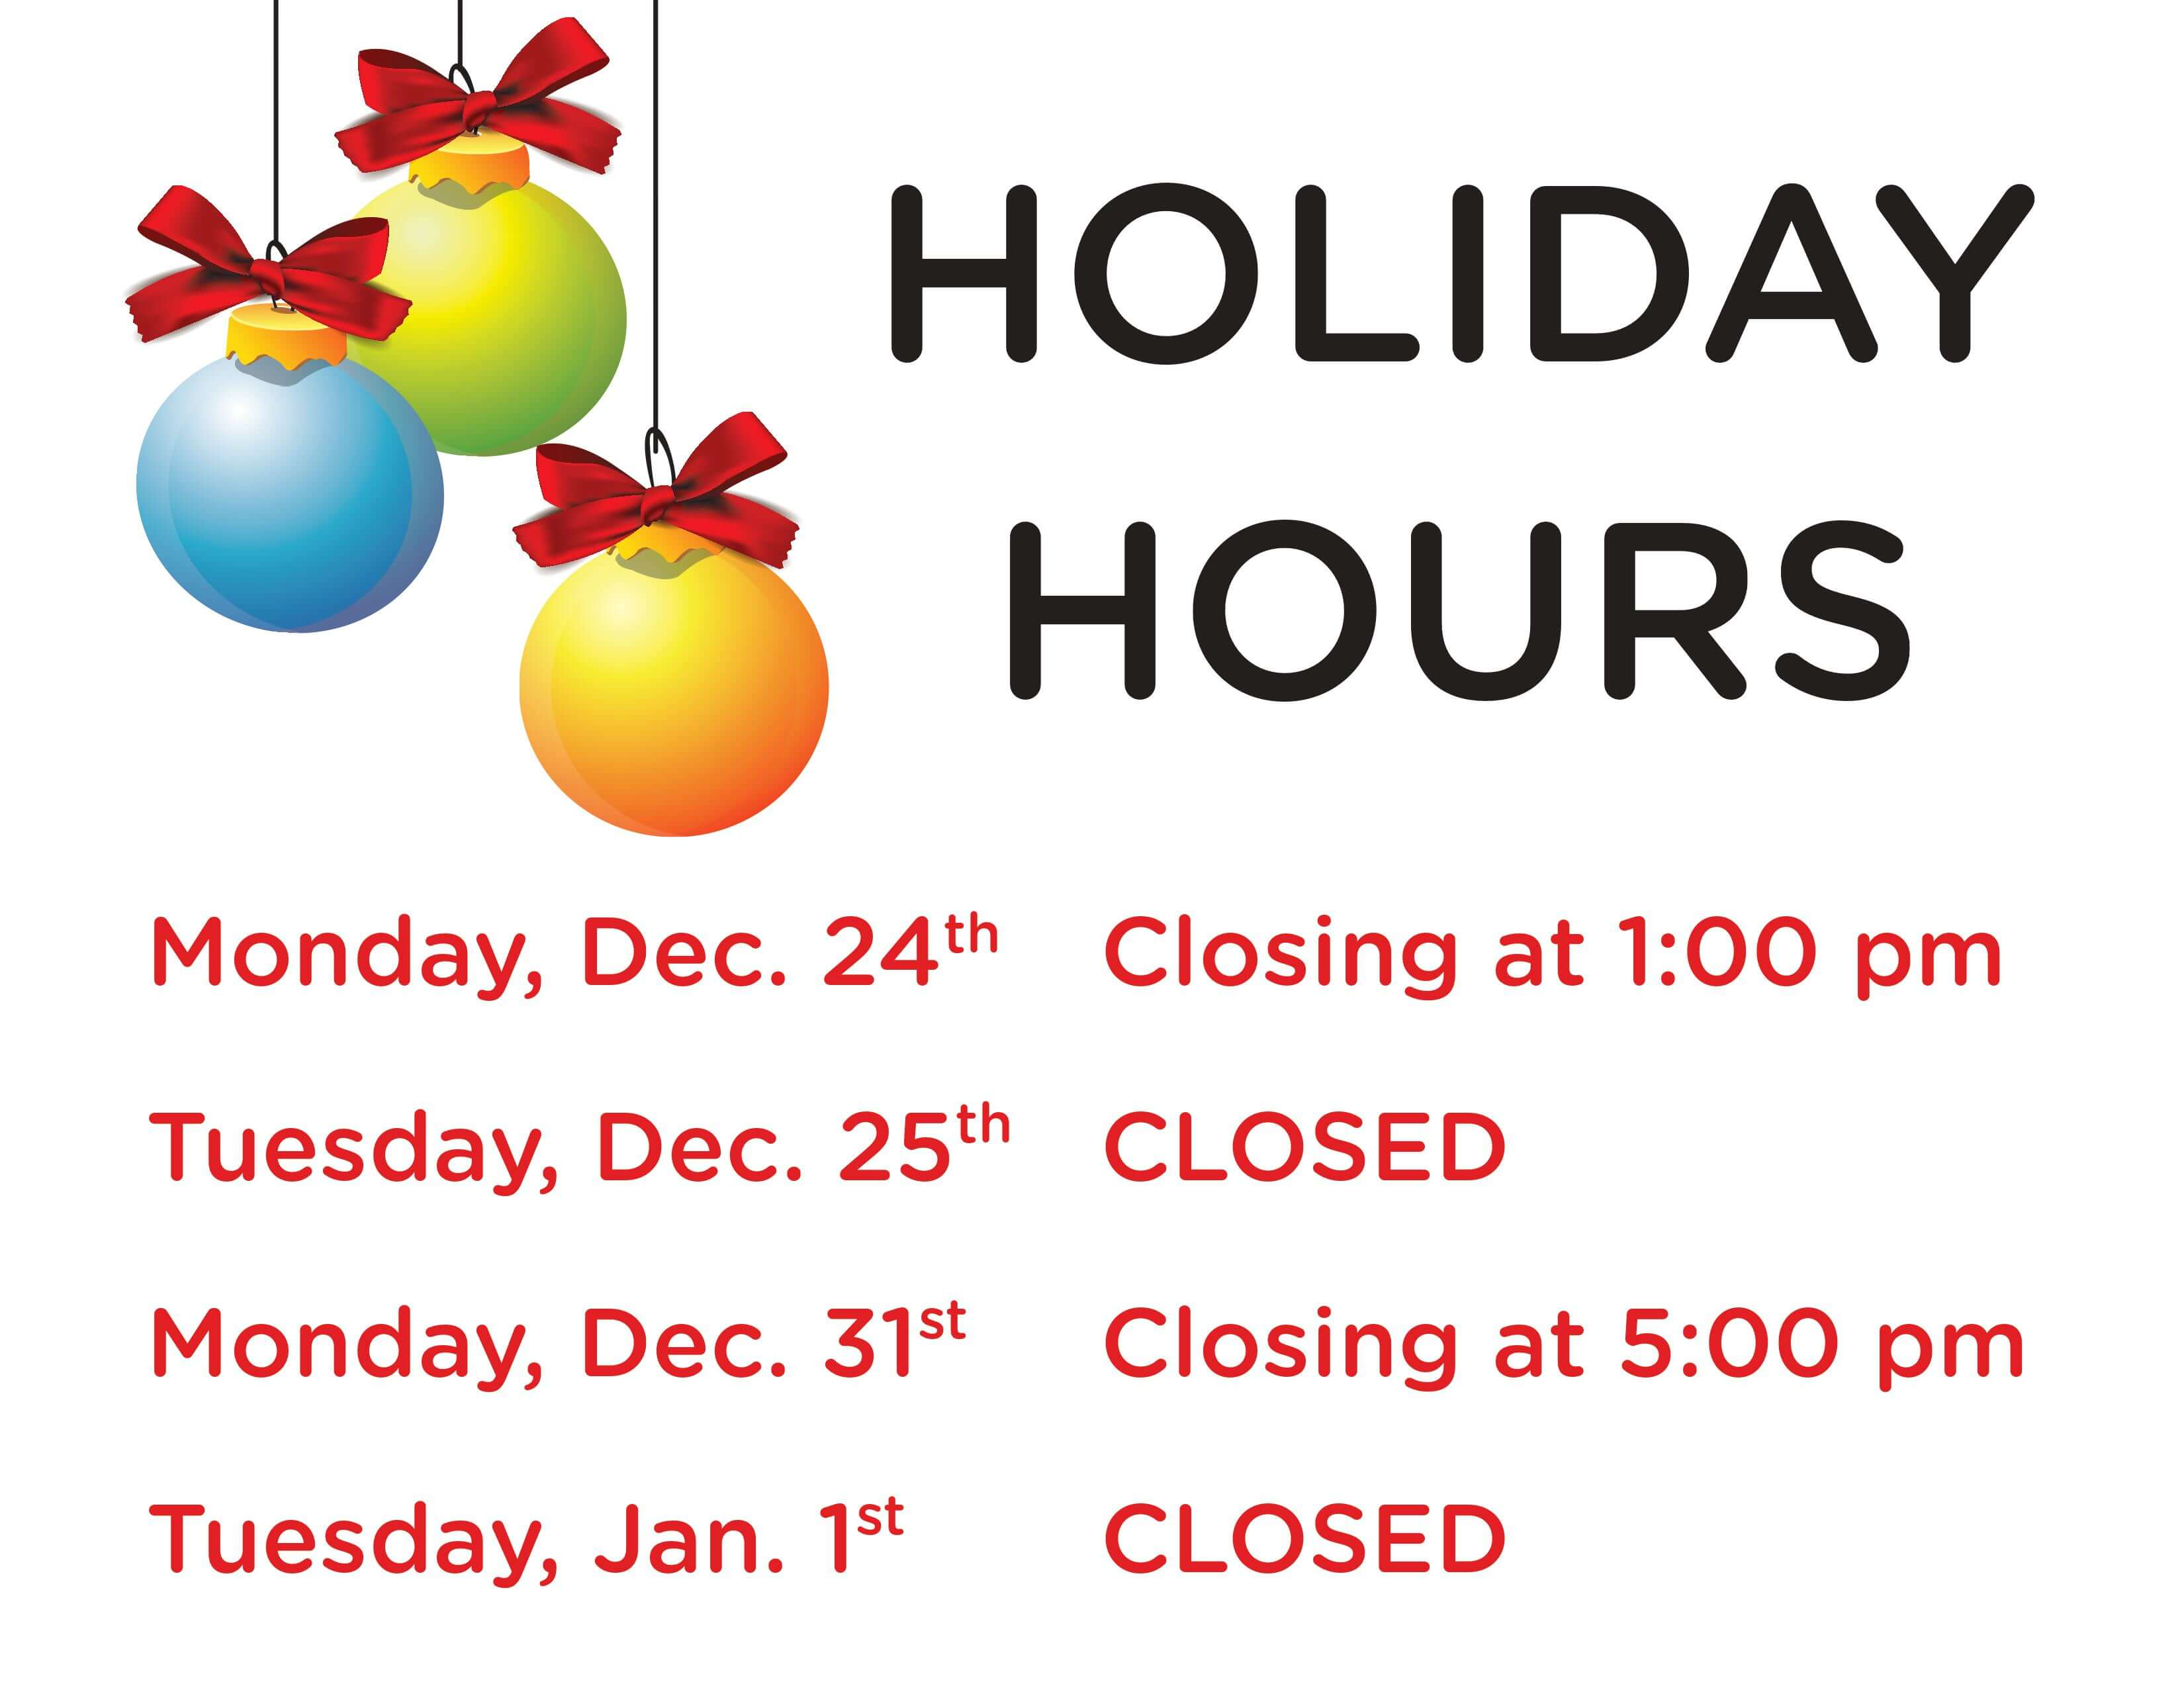 Library Closes @ 1 pm